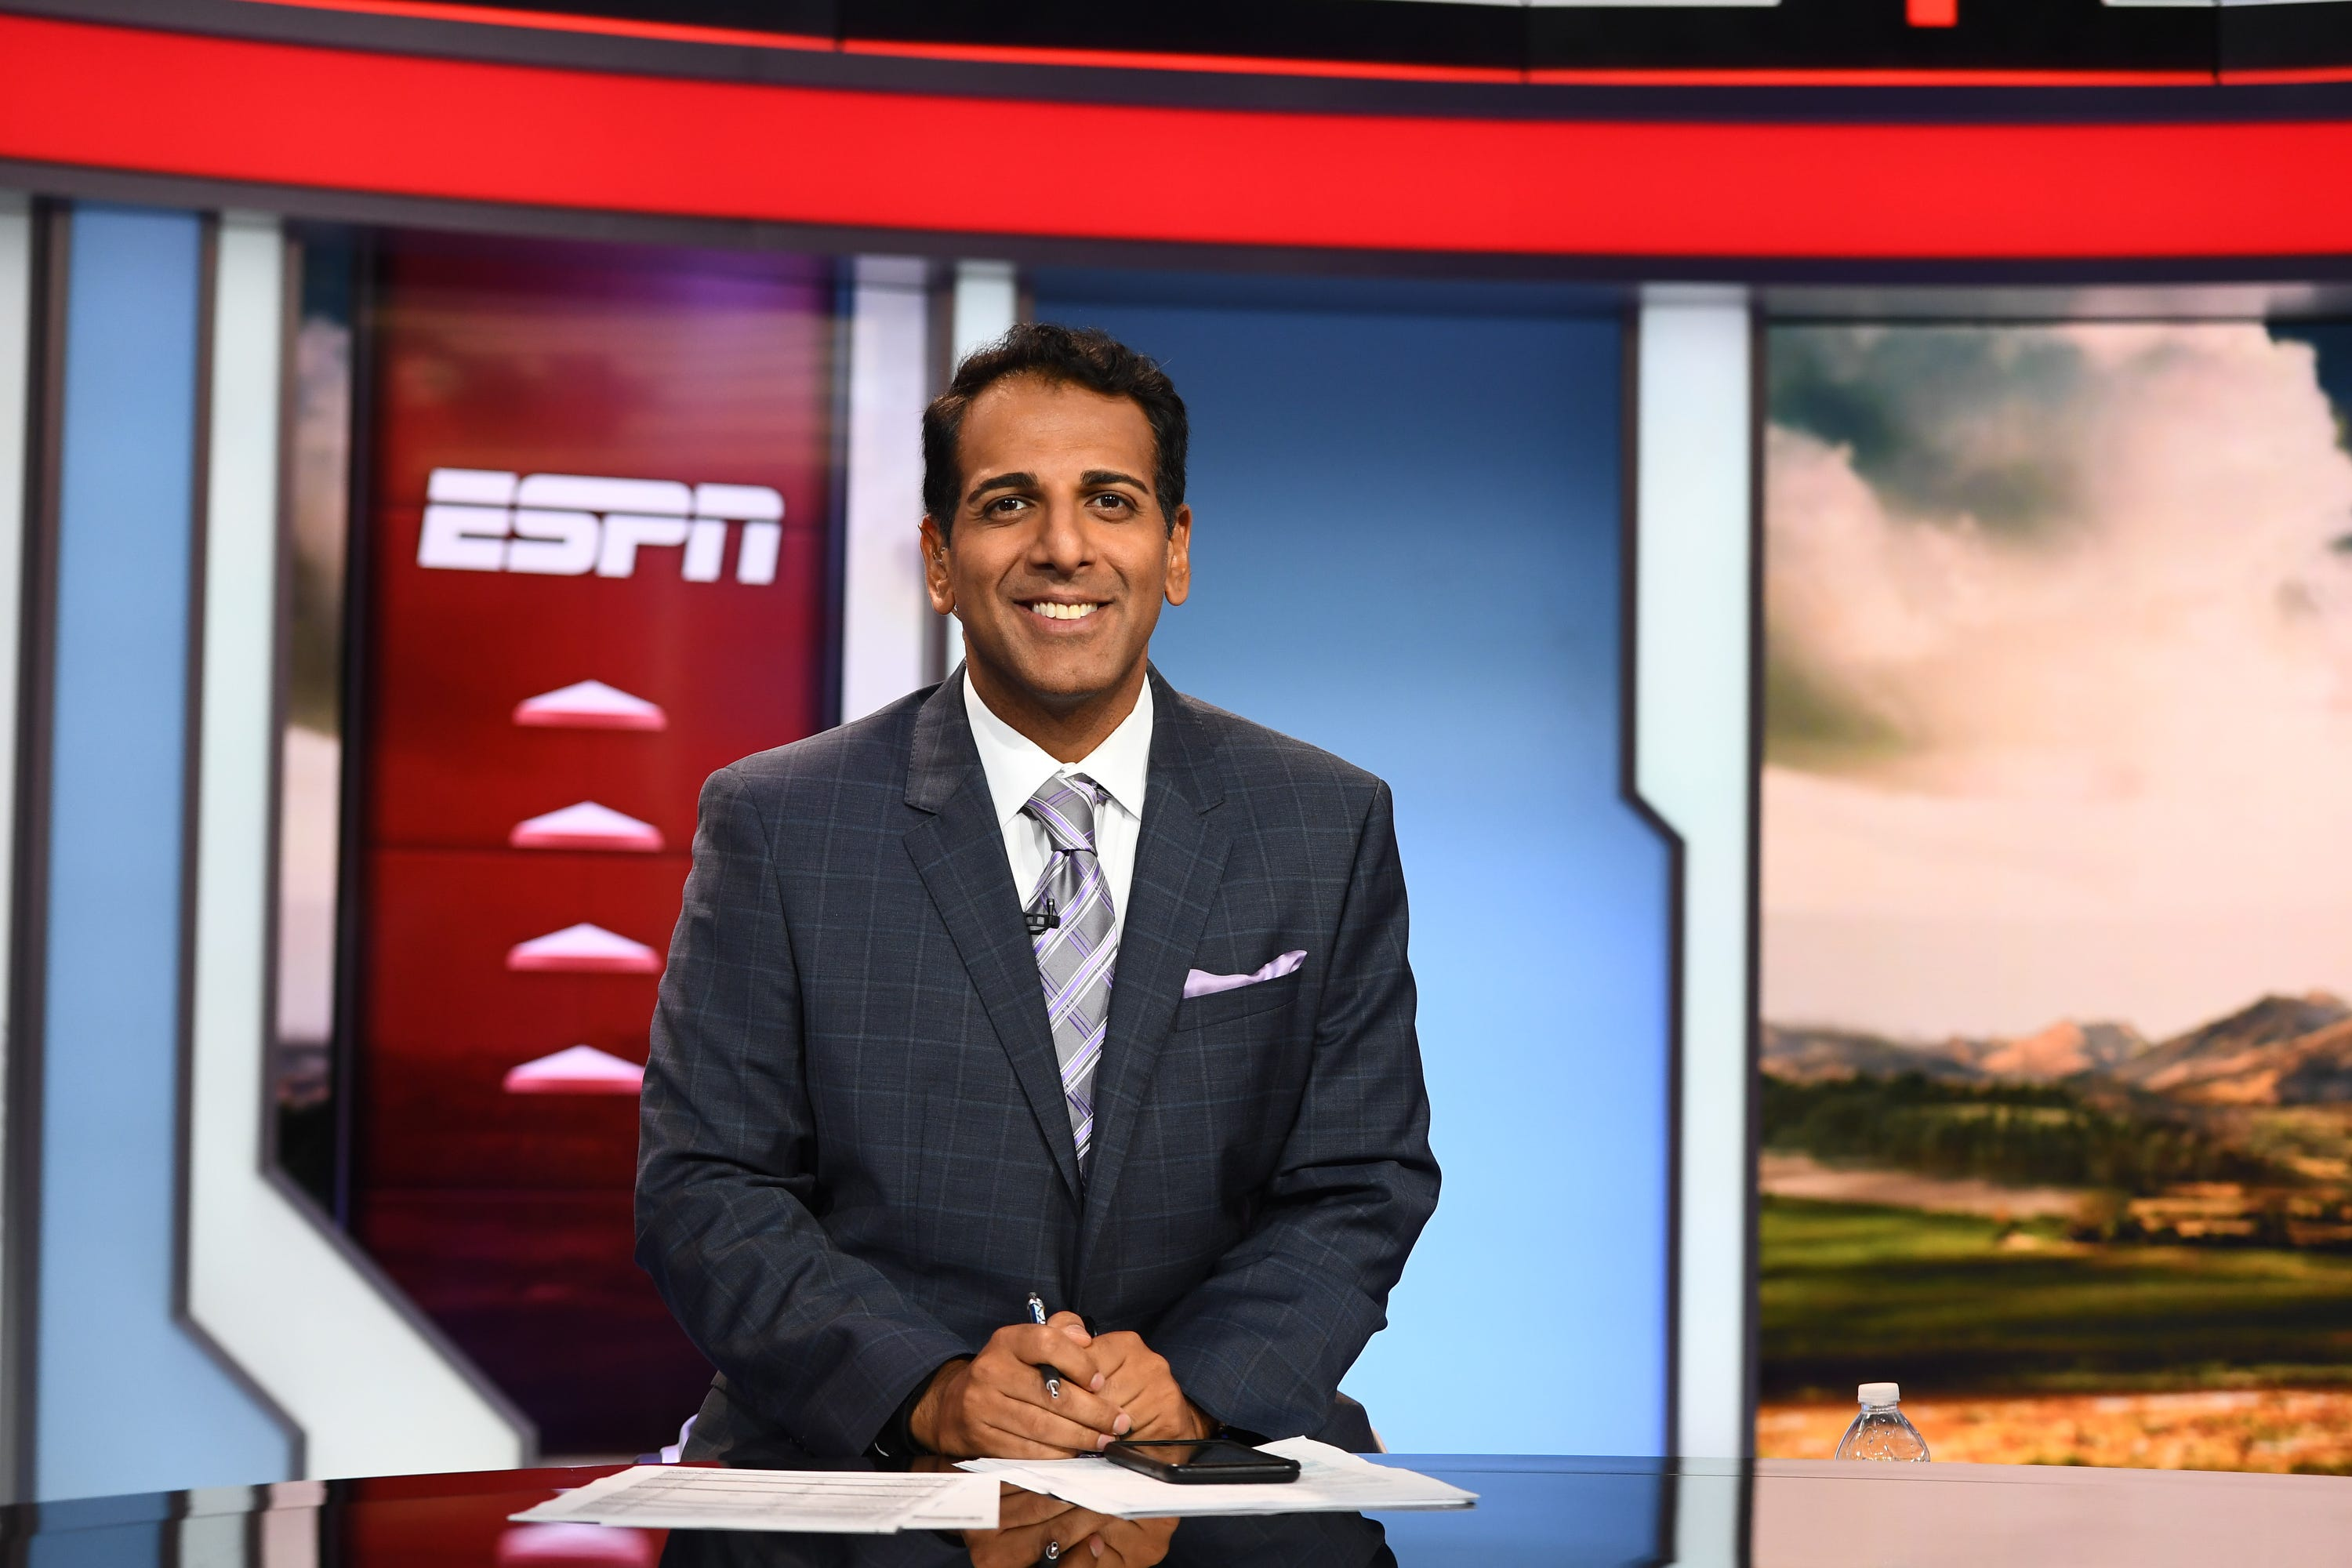 Fired ESPN anchor Adnan Virk: 'I did nothing wrong that would justify my termination'